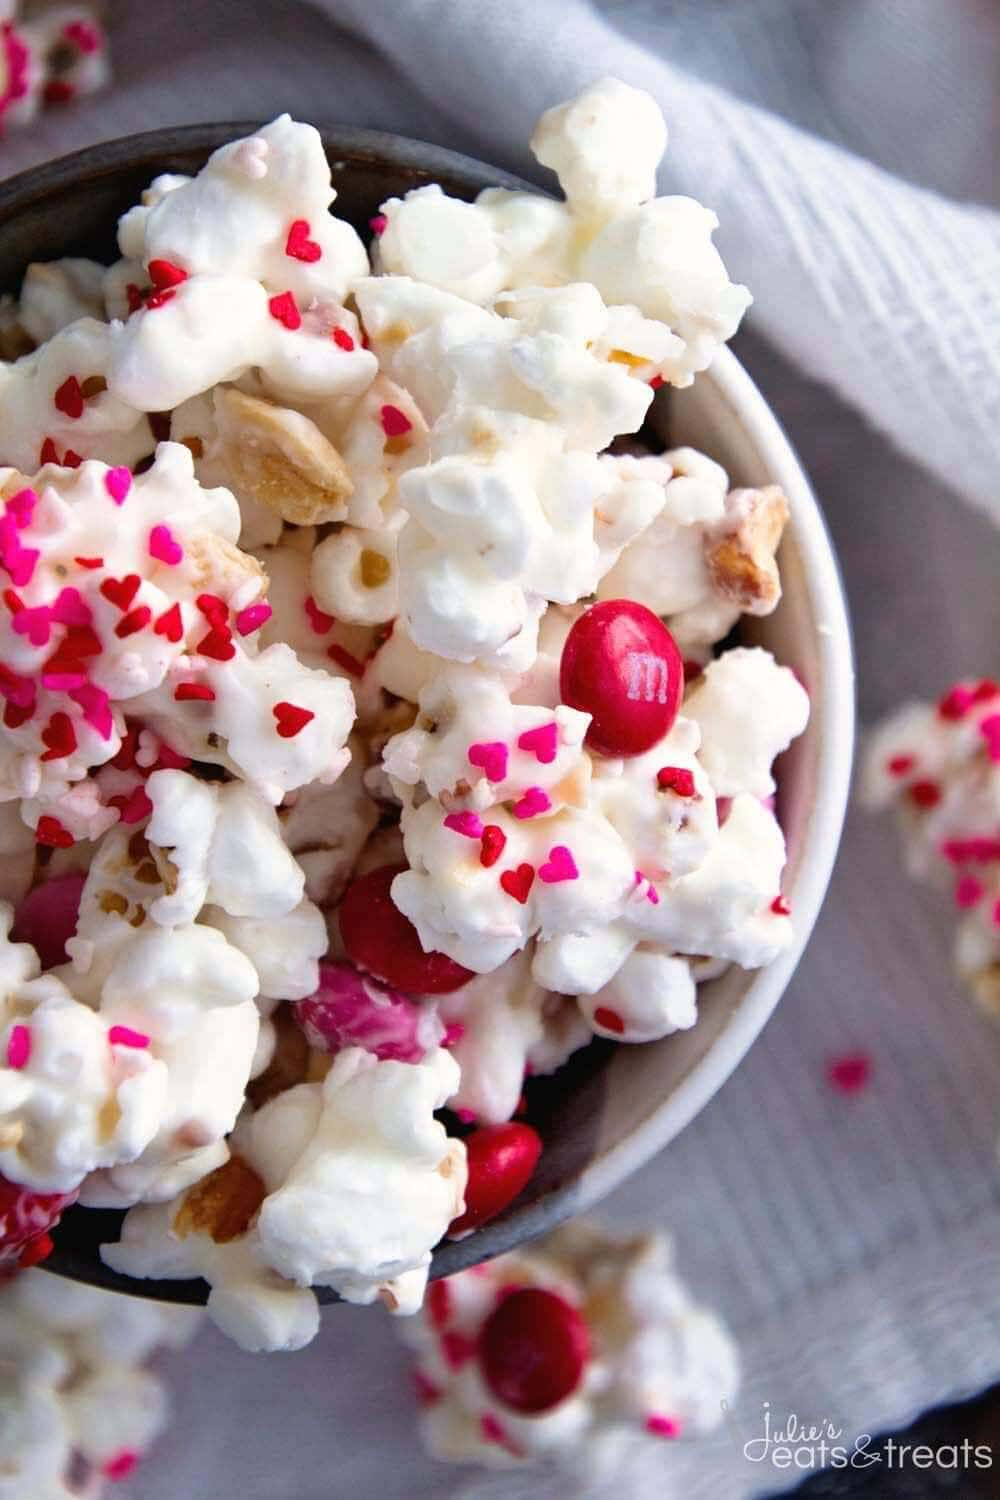 Valentine Snack Mix ~ Popcorn, Peanuts and M&M's coated in White Almond Bark! An Easy Sweet Snack for Your Sweetie!